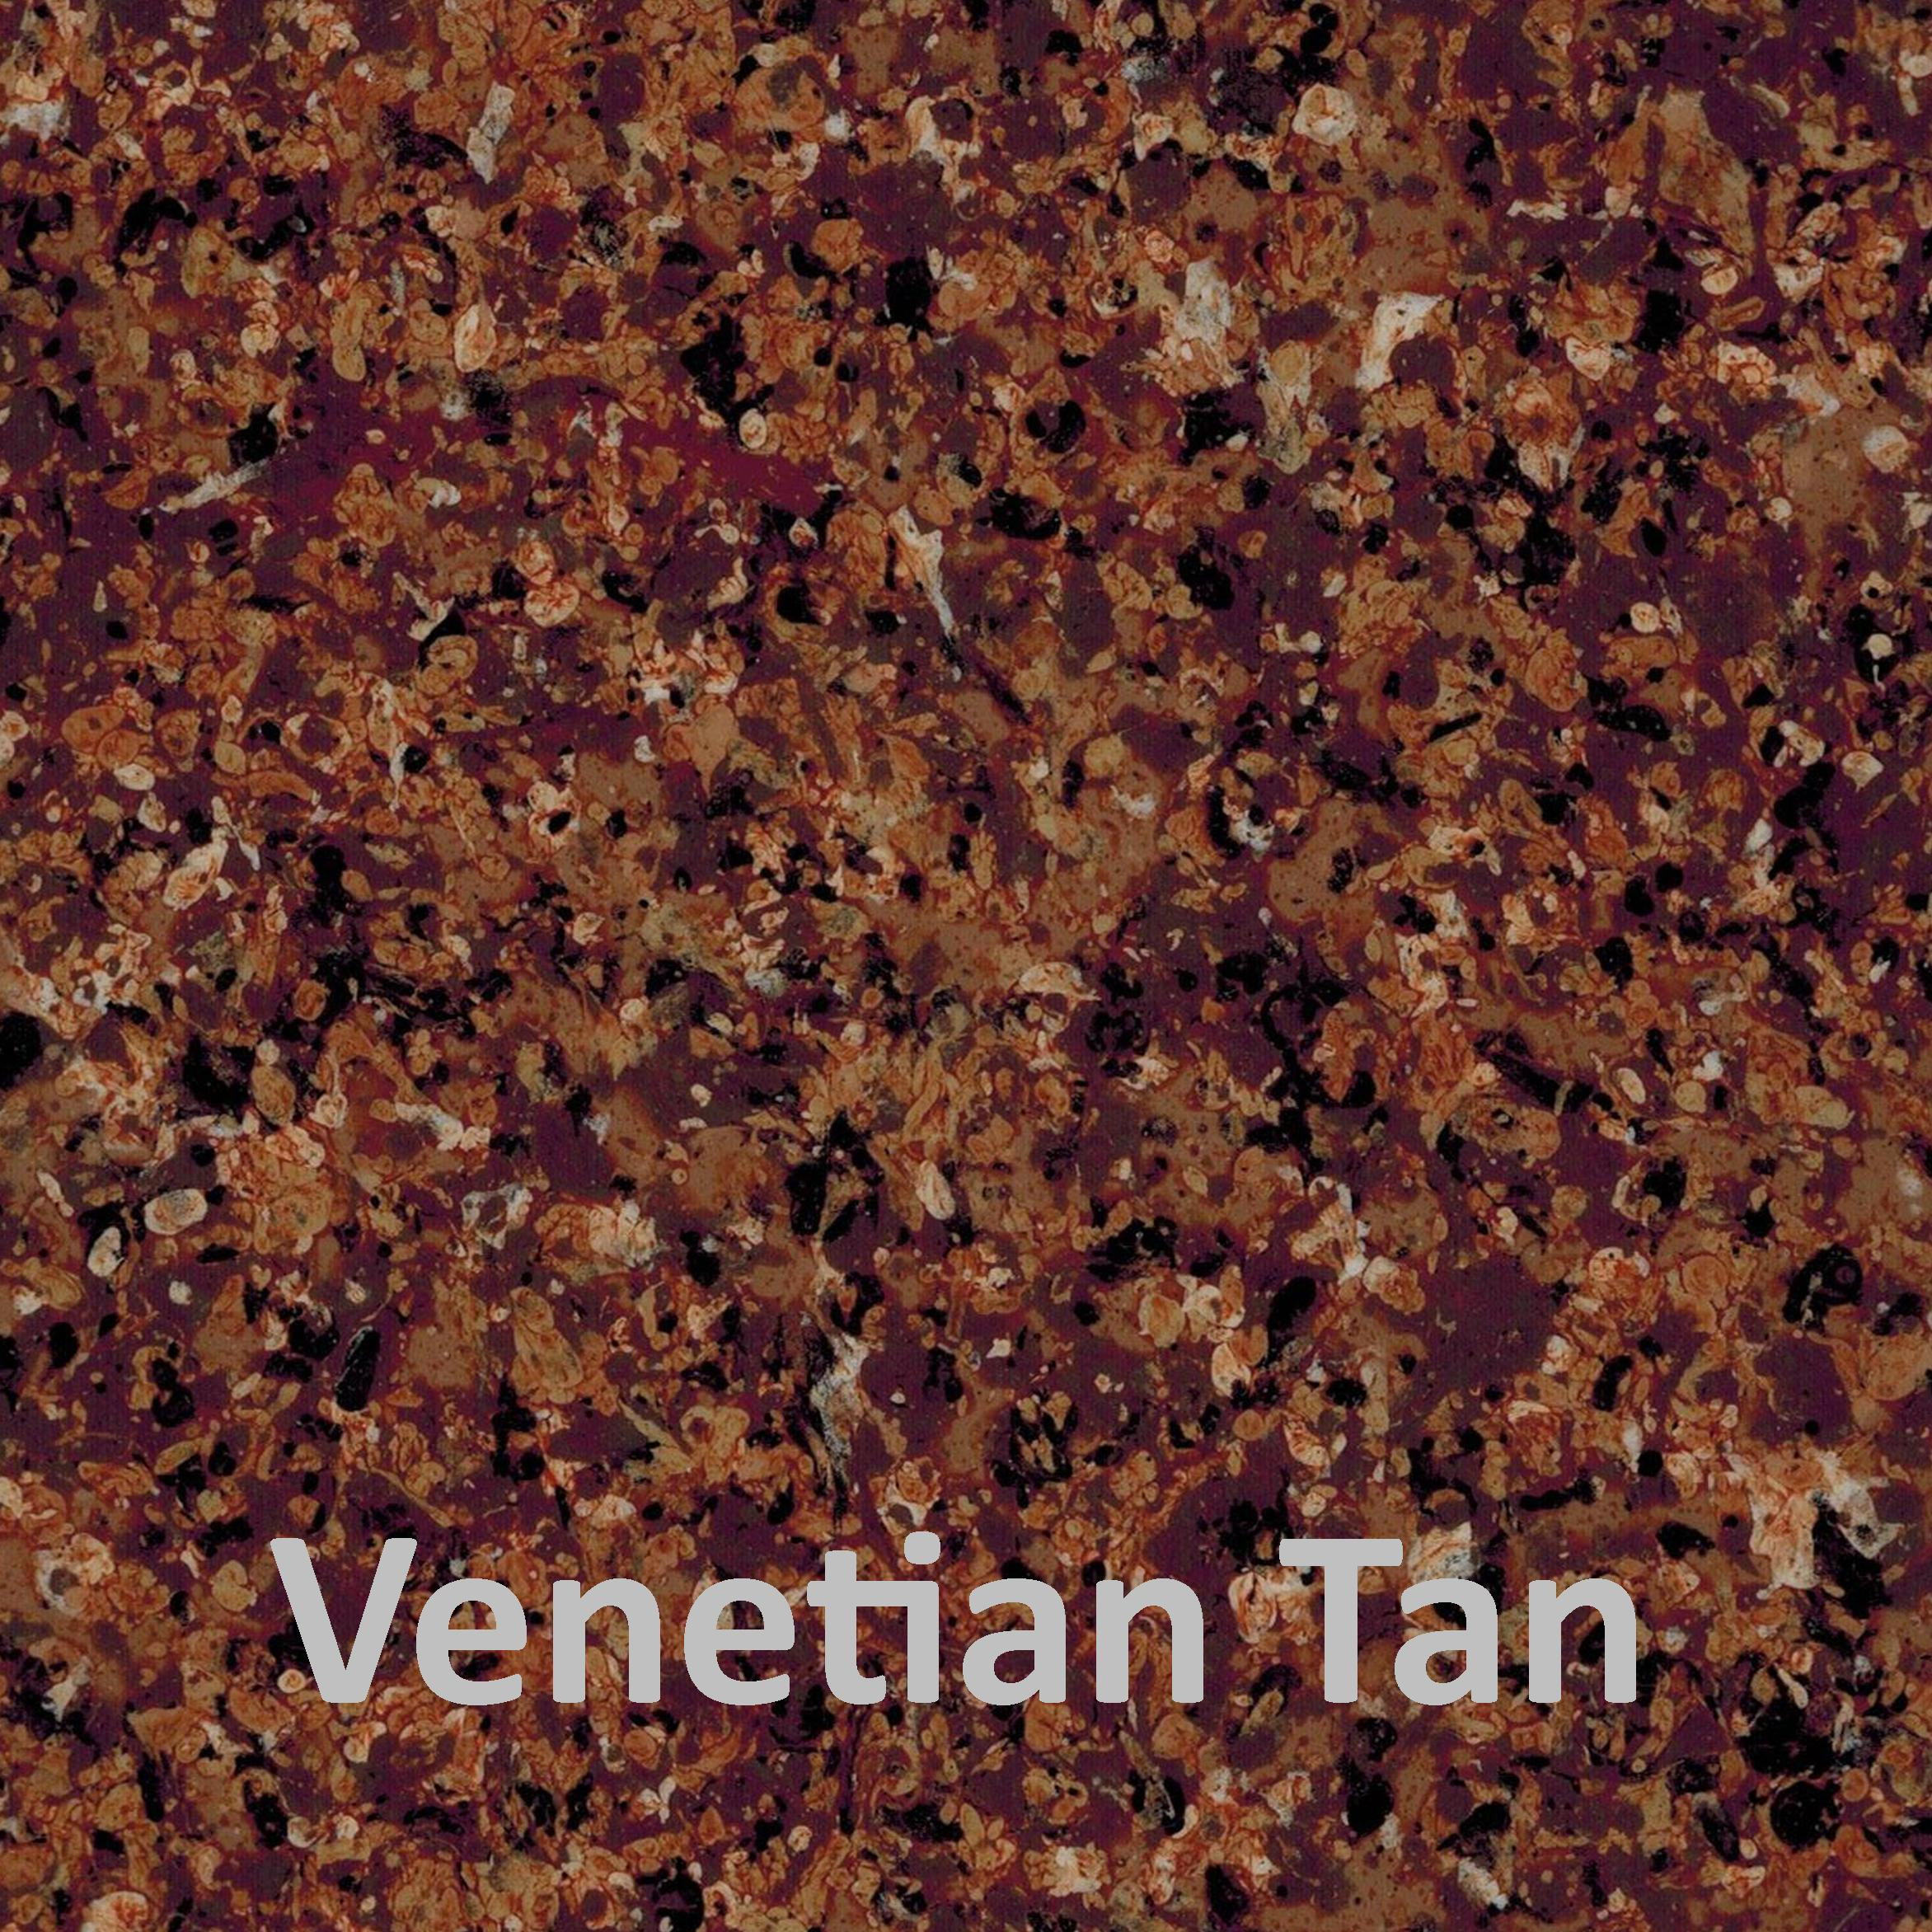 venetian-tan-label.jpg